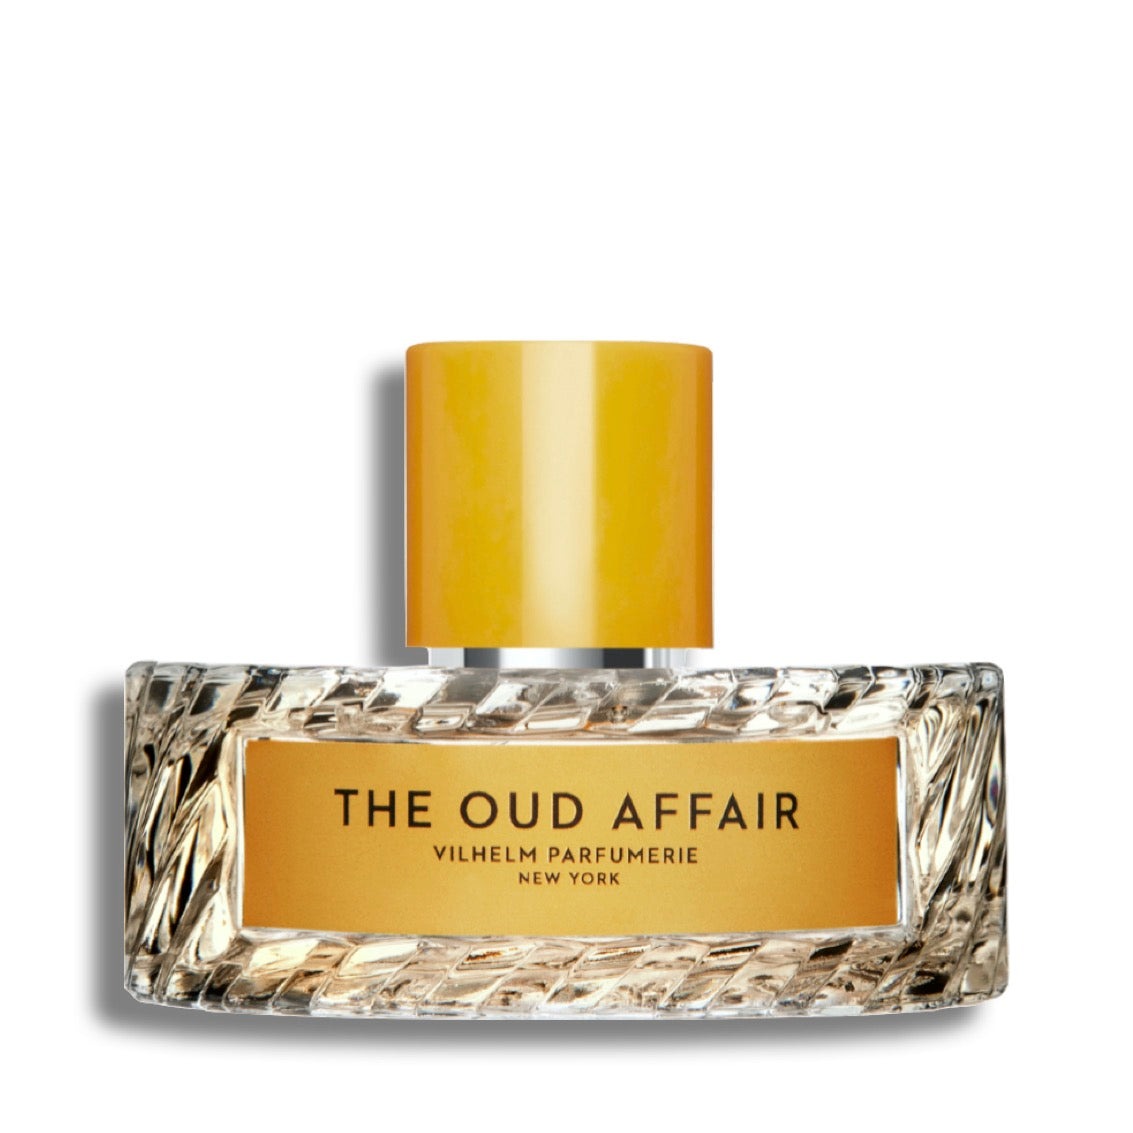 Vilhelm Parfumerie - The Oud Affair